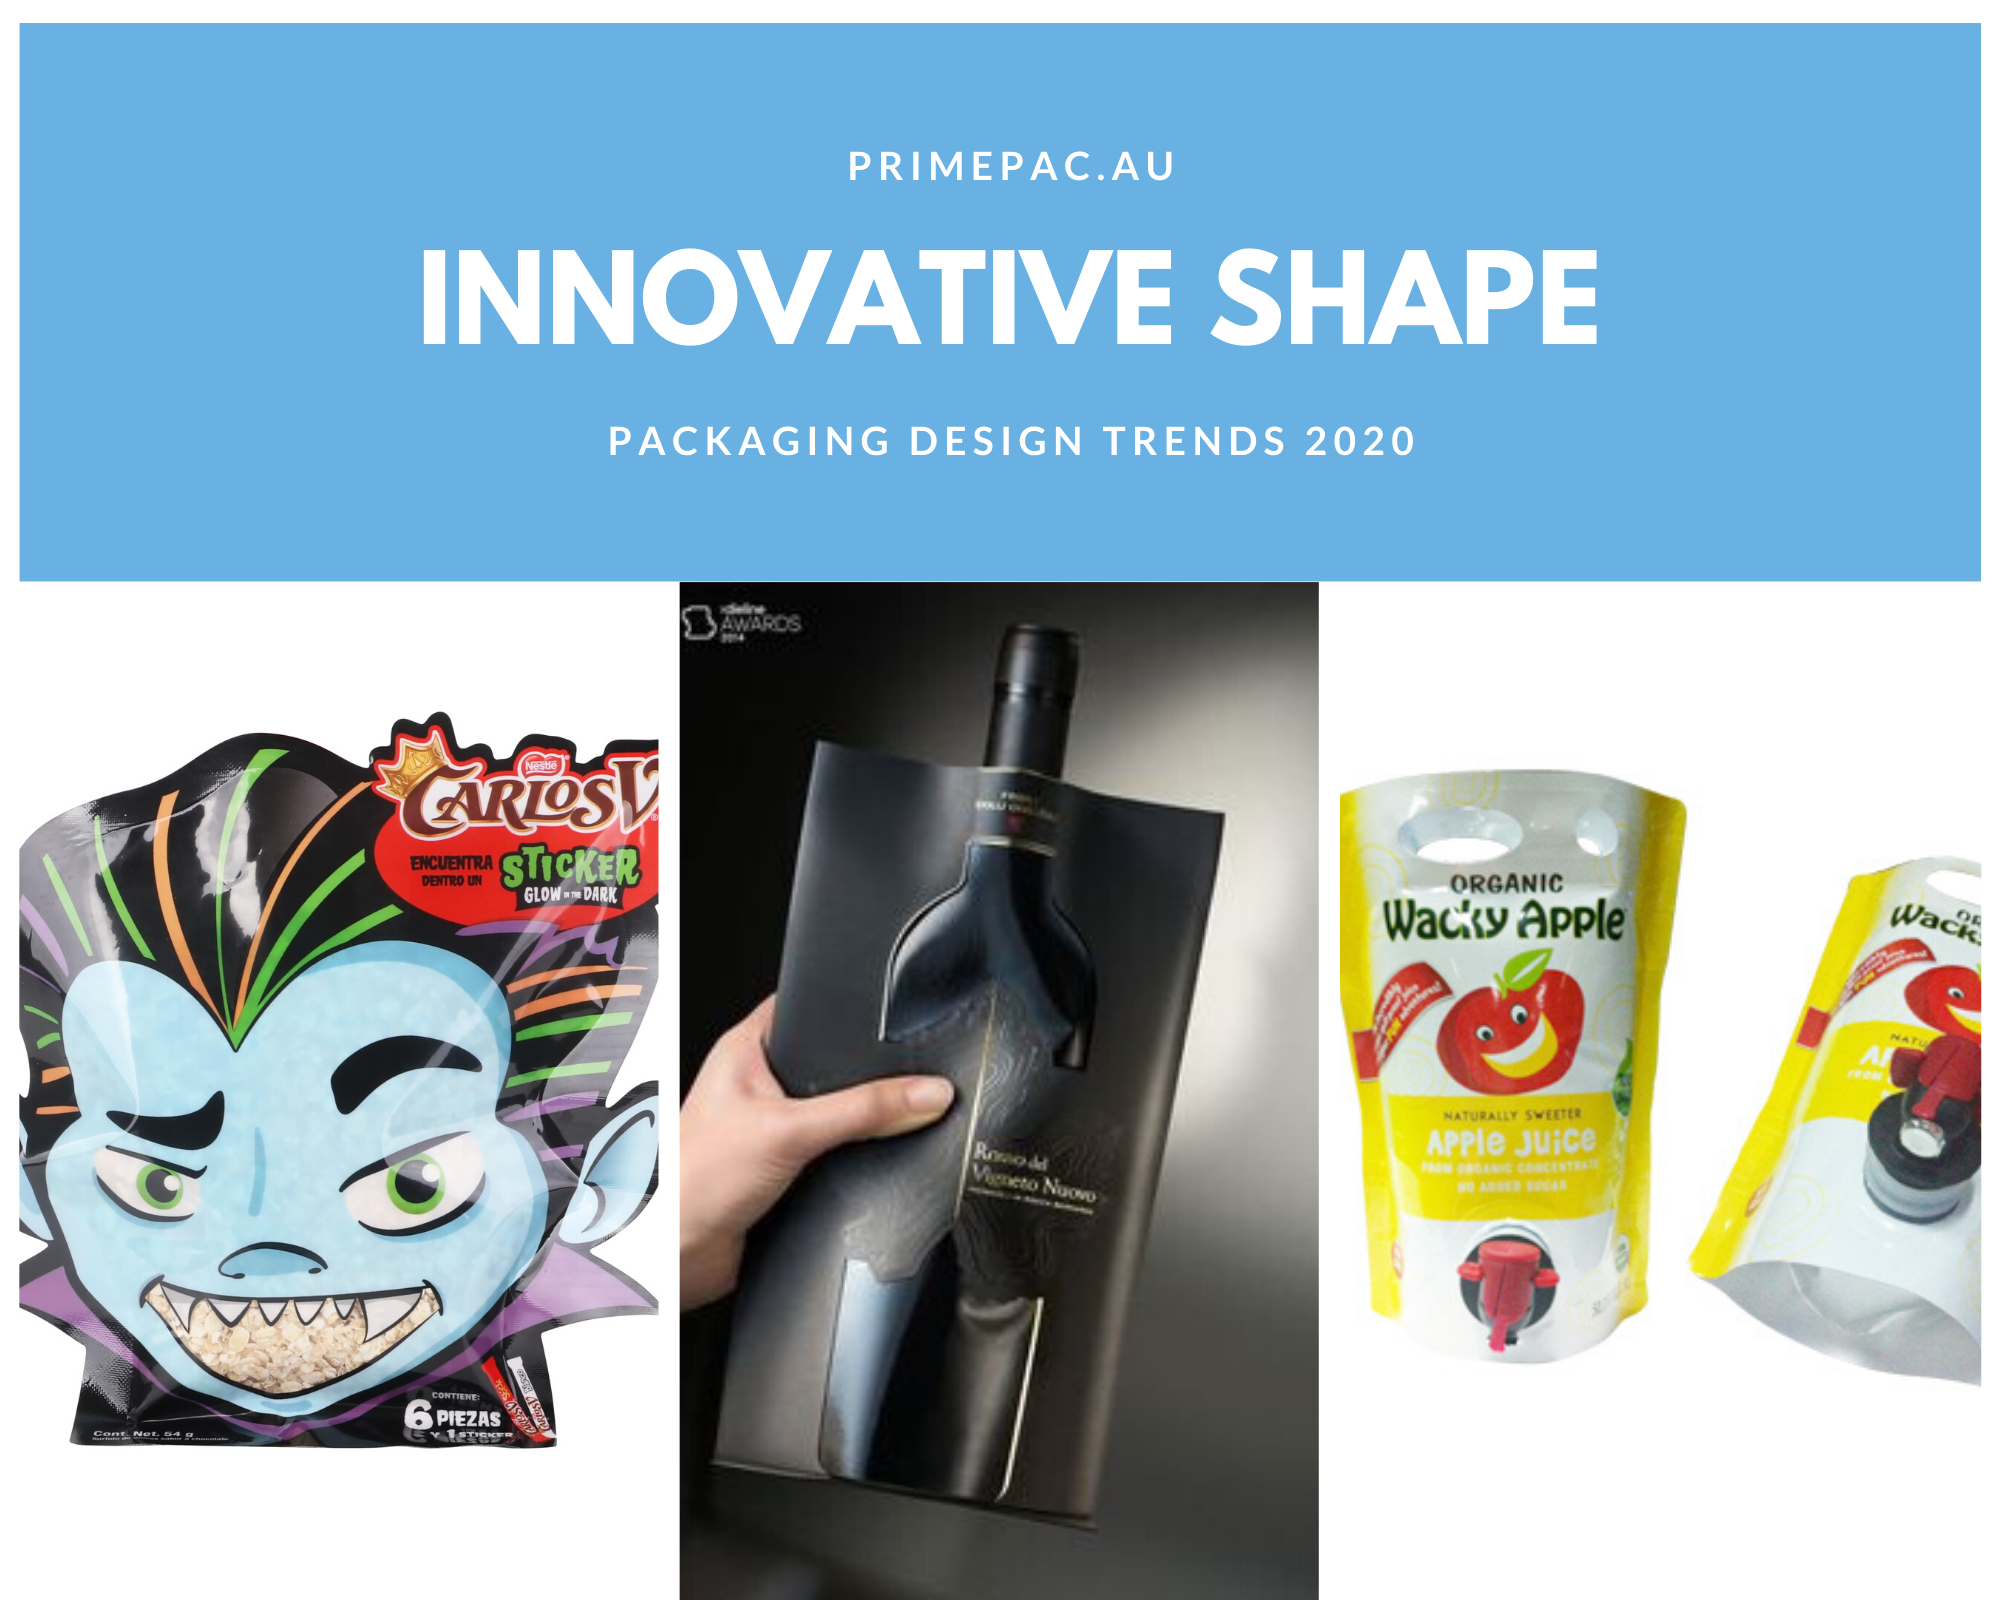 innovate shape design - blog 1 Primepac